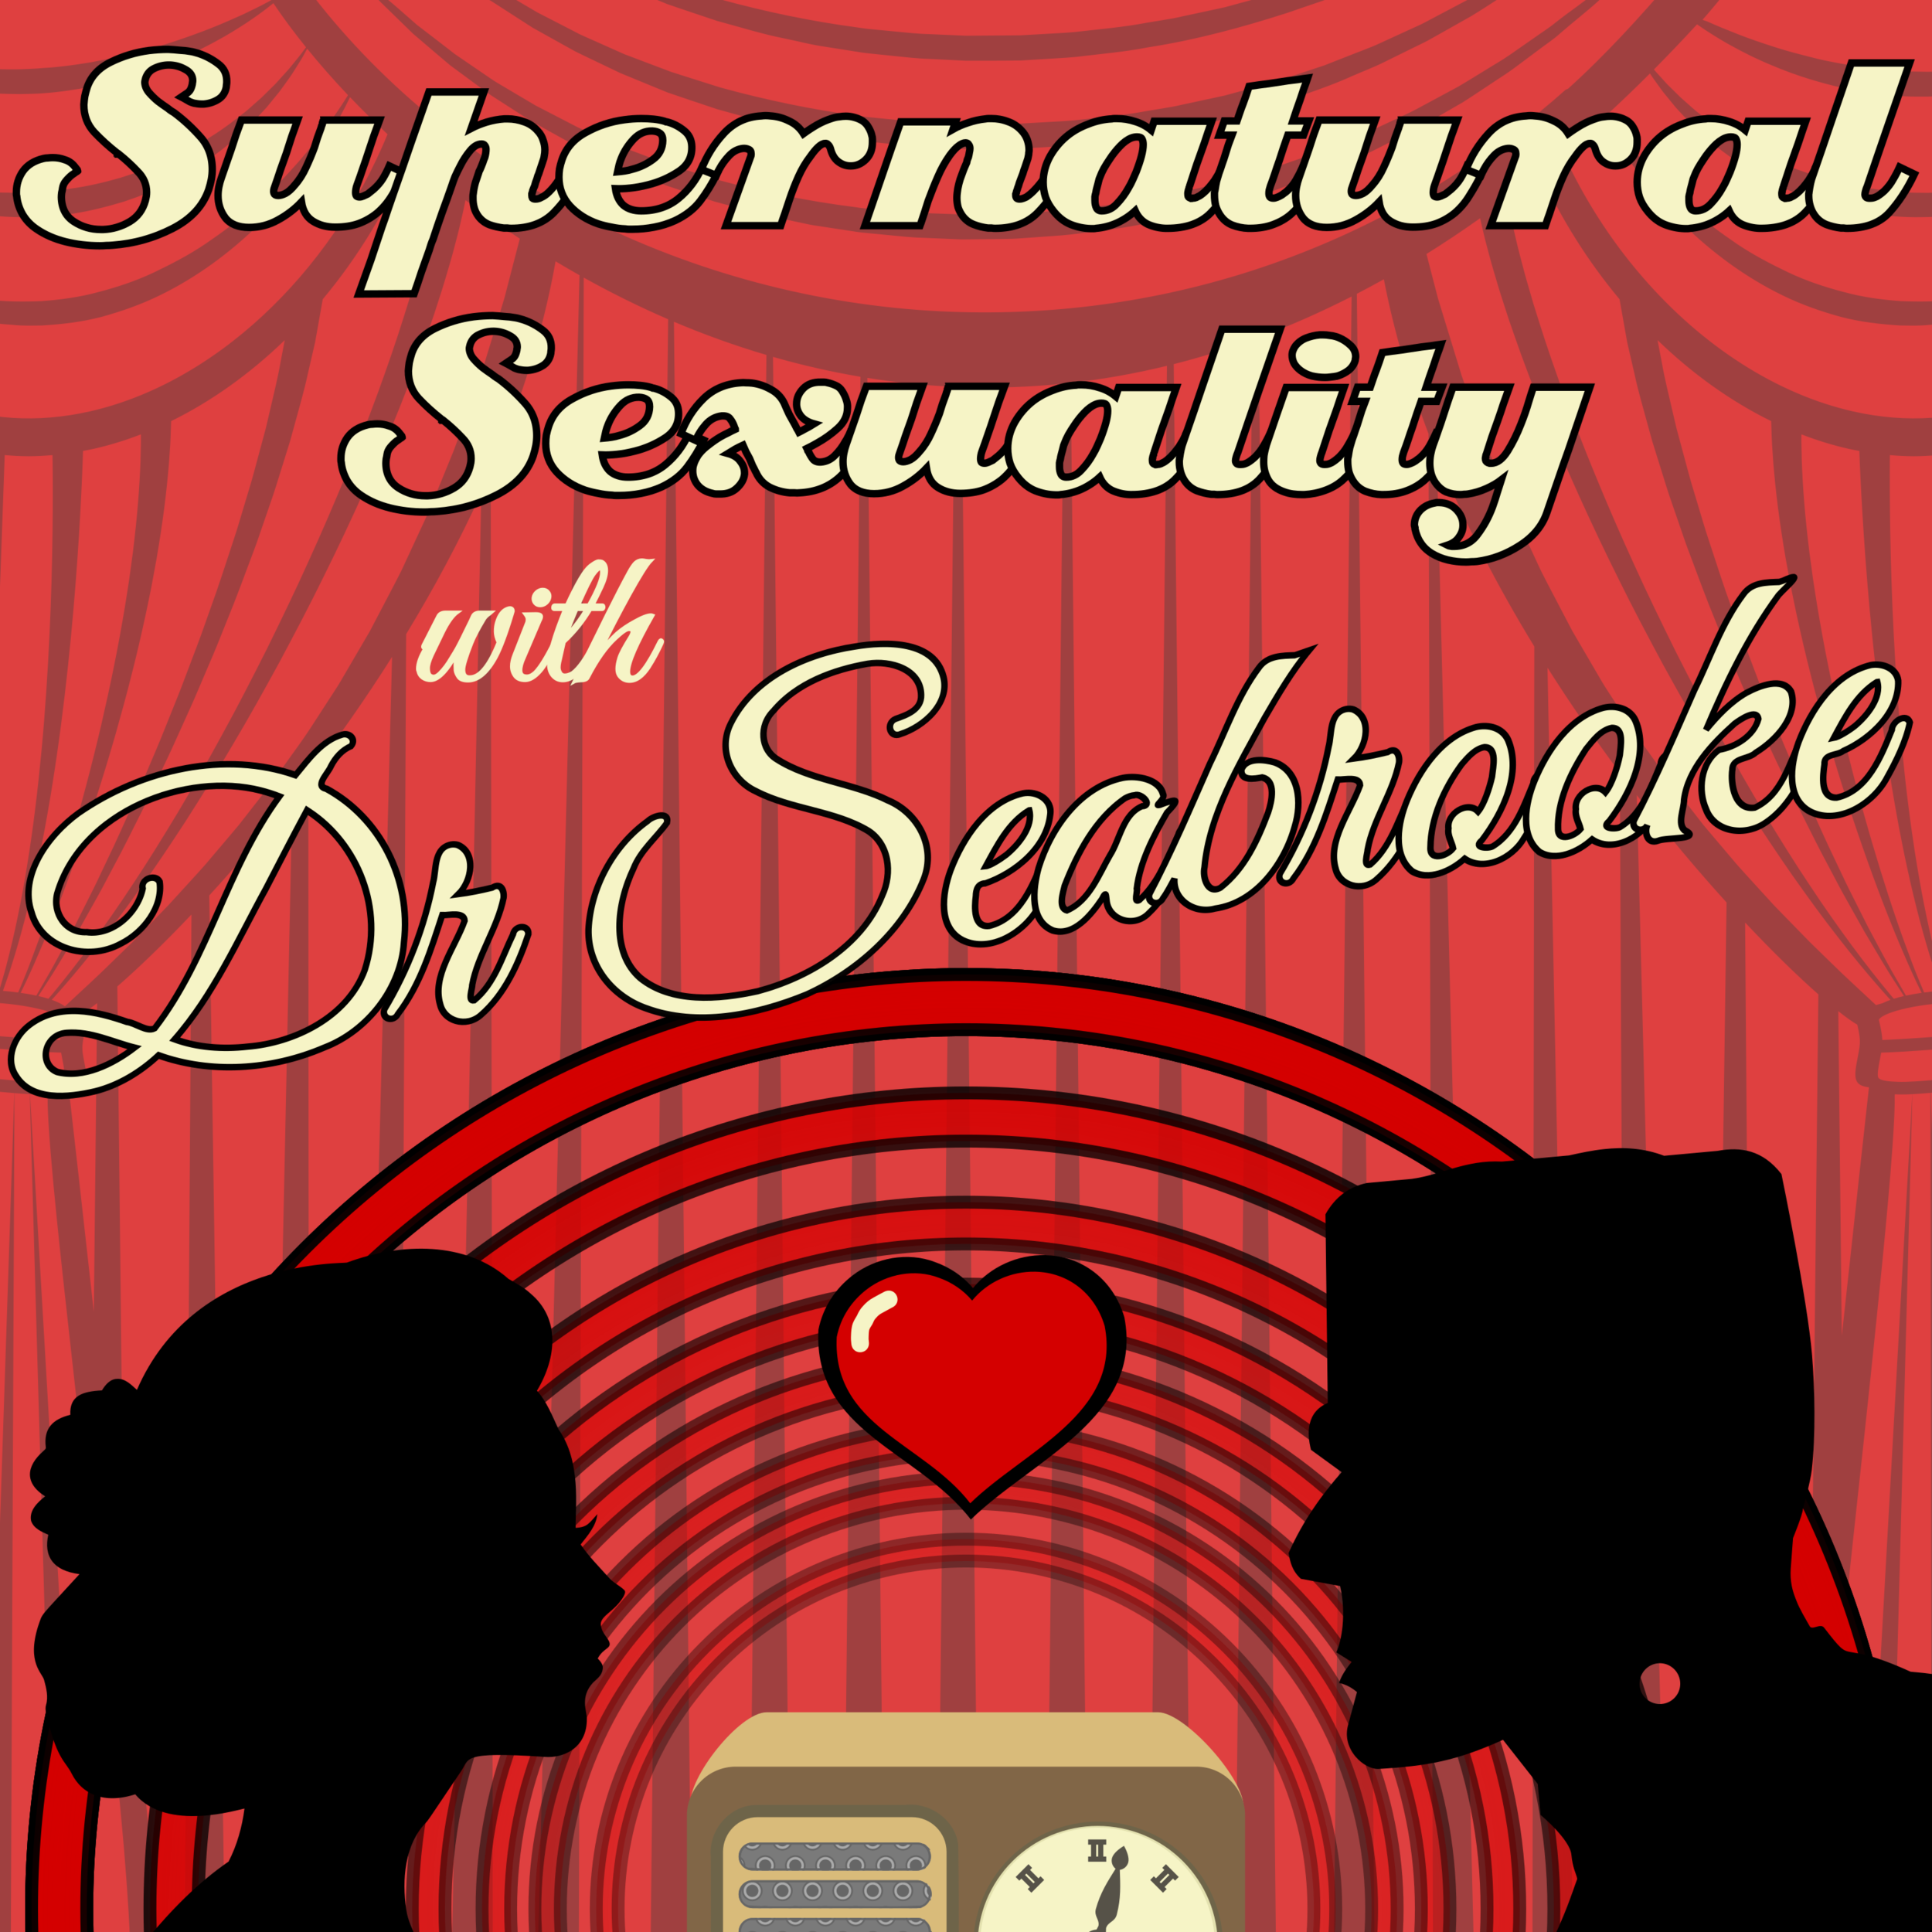 The cover art for Supernatural Sexuality. It has a cartoon radio between the shadows of what looks to be a human woman and frankenstein. There is a heart floating between them, and the title of the show is in bold and curly script above them.